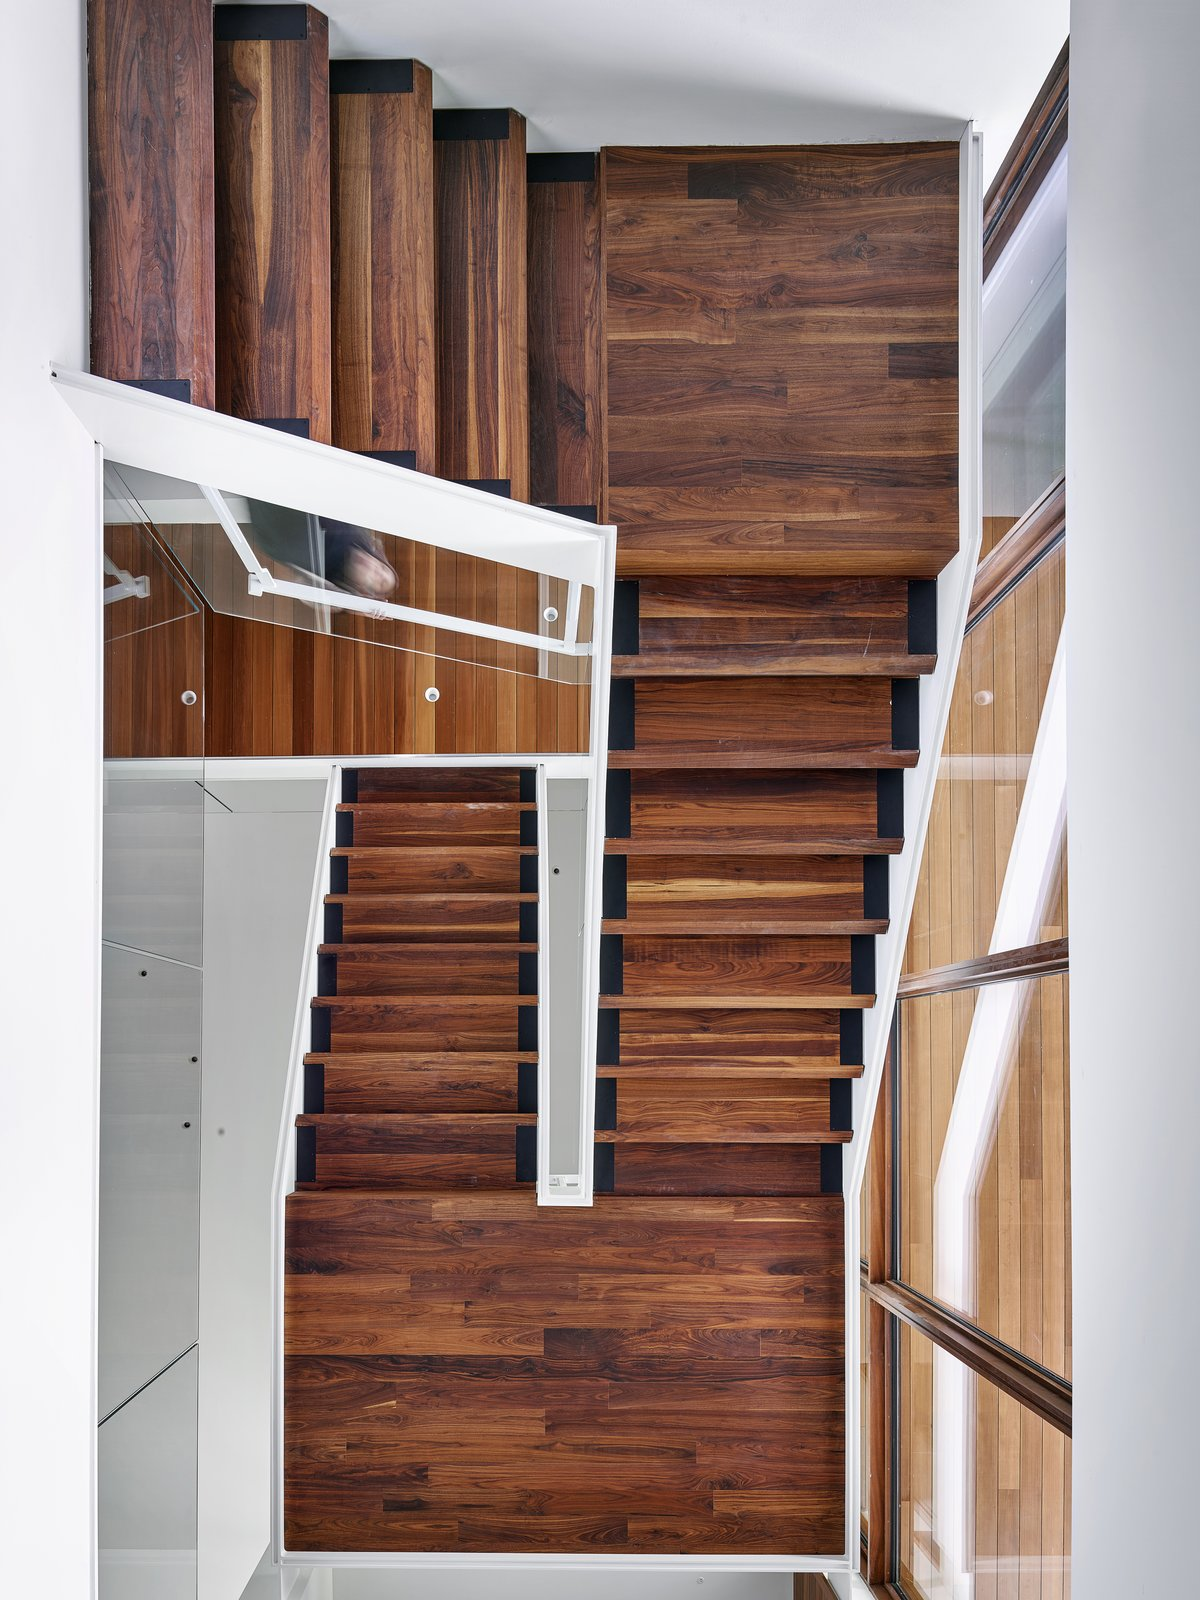 Staircase, Glass Railing, Wood Tread, and Metal Railing The grand, open tread wood staircase vertically connects the three floor plates, while creating an open and transparent connection between them all.   Photo 9 of 23 in A Luminous, Eco-Friendly Abode Is Completed With its Own Modern Art Gallery from Artery House